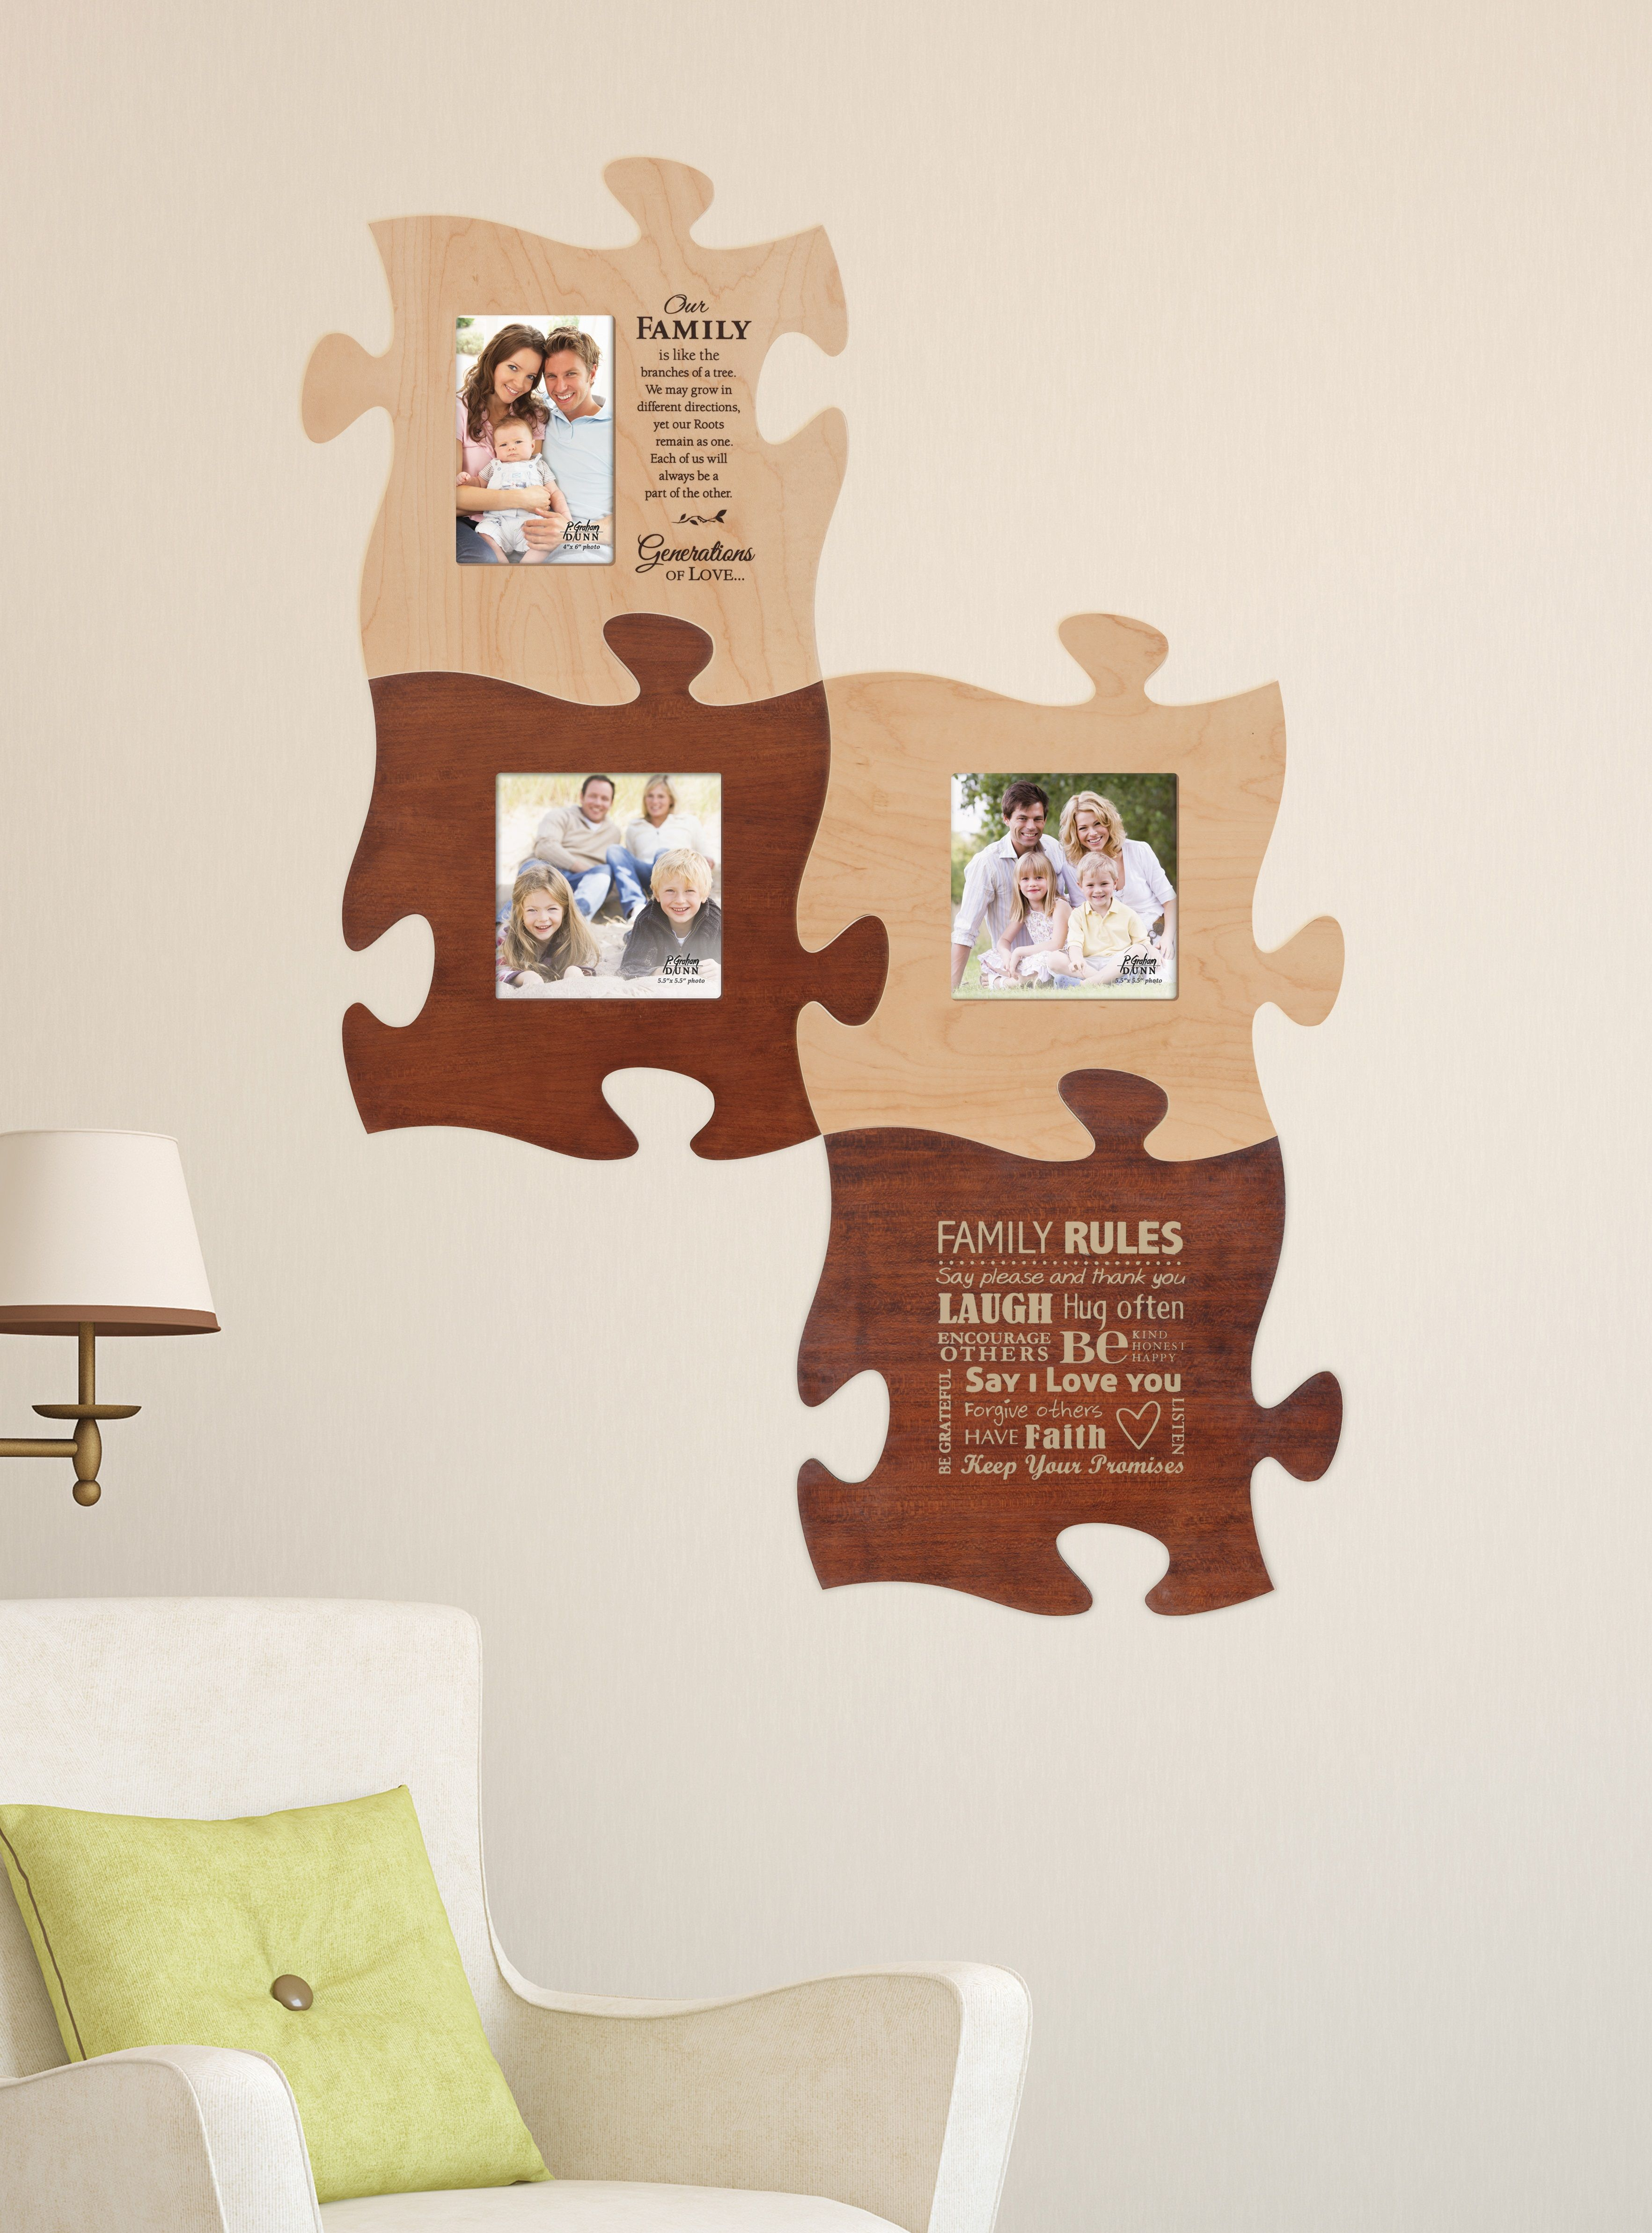 Puzzle Piece Your Family And Friends Together With This Wall Art There S Room For Everyone Plus Integrat Puzzle Pieces Christian Book Store Framed Wall Art